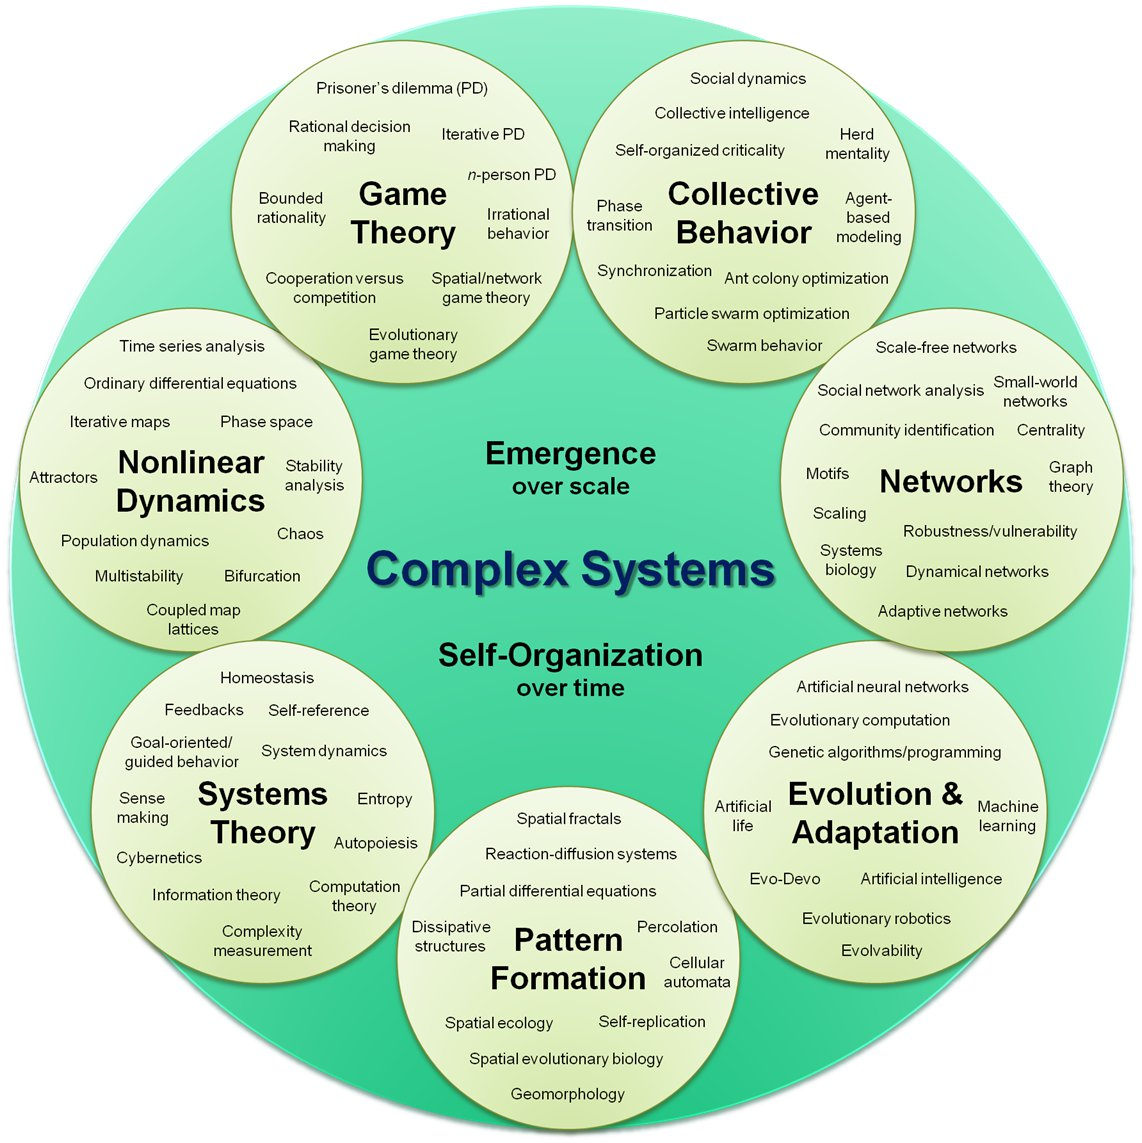 systems theory essay I thoroughly enjoyed wednesday's class involving our discussion on systems theory and interdependence we did many activities to build our strengths and.